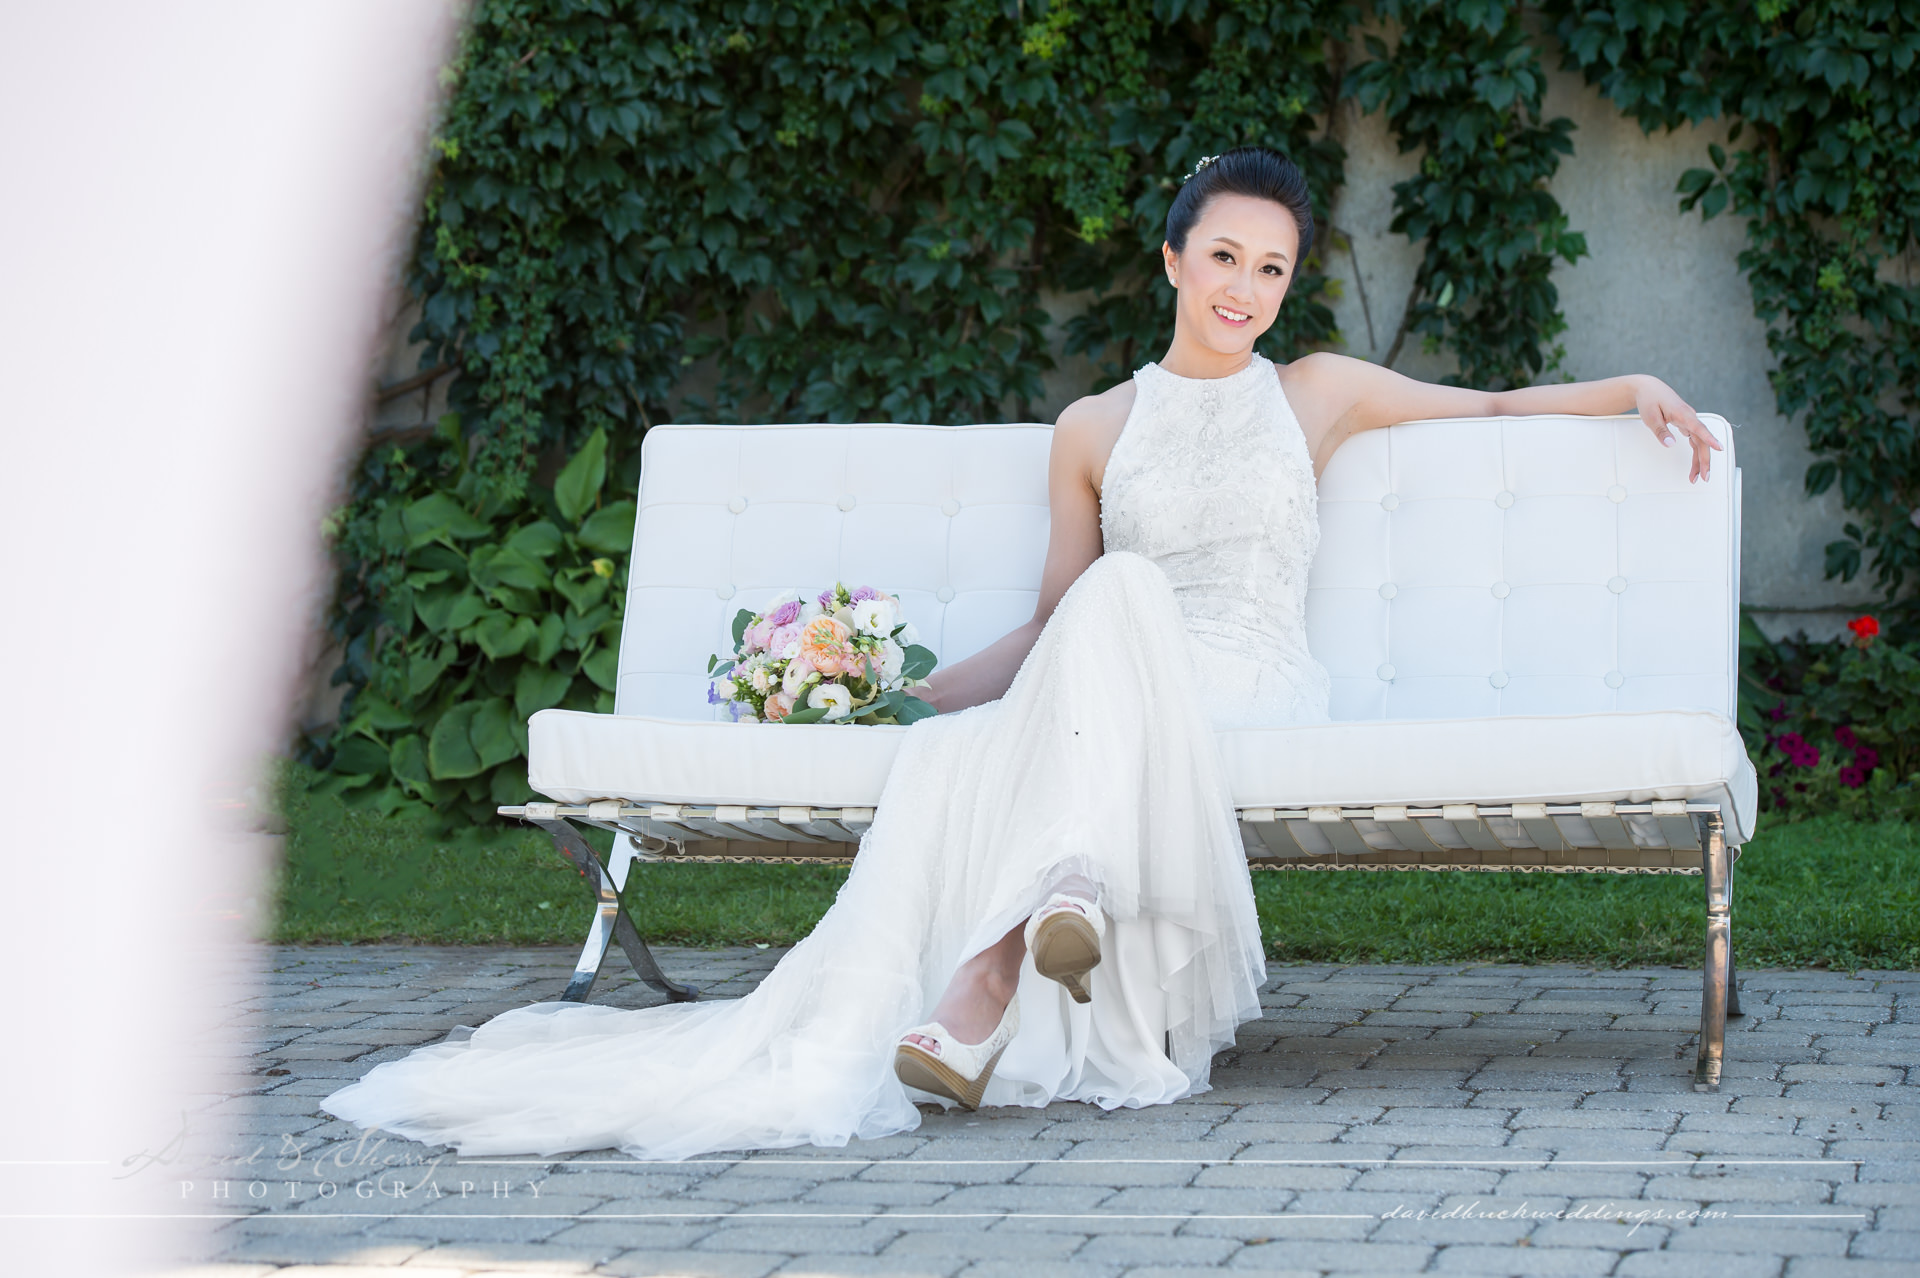 waterstone-estate-wedding-david-sherry-photography-simon-crystal-007